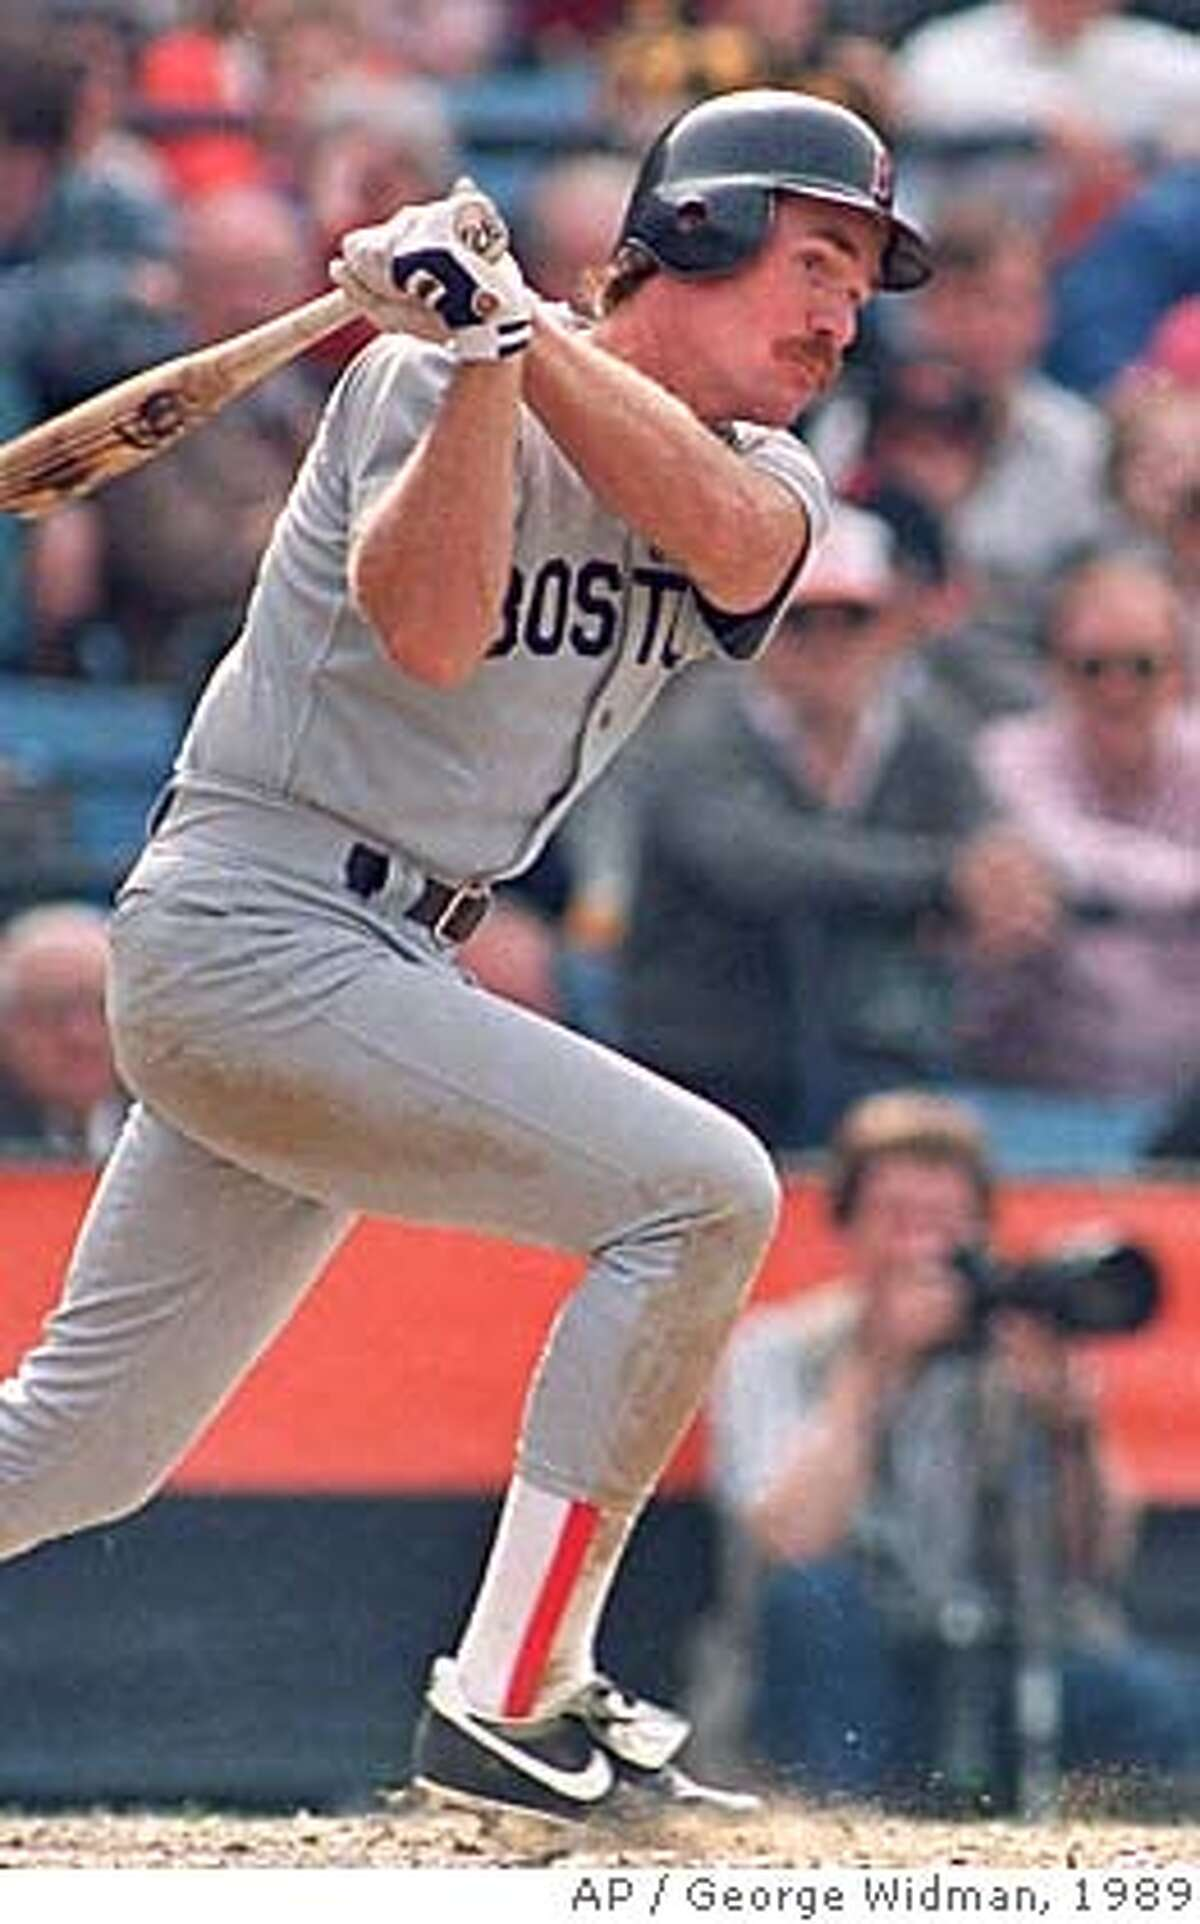 ** FILE ** Boston Red Sox' Wade Boggs follows the flight of his sixth inning double against the Baltimore Orioles in the season opener at Baltimore's Memorial Stadium, in this April 3, 1989 photo. Boggs and Ryne Sandberg were elected to the Hall of Fame Tuesday Jan. 4, 2005. (AP Photo/George Widman)